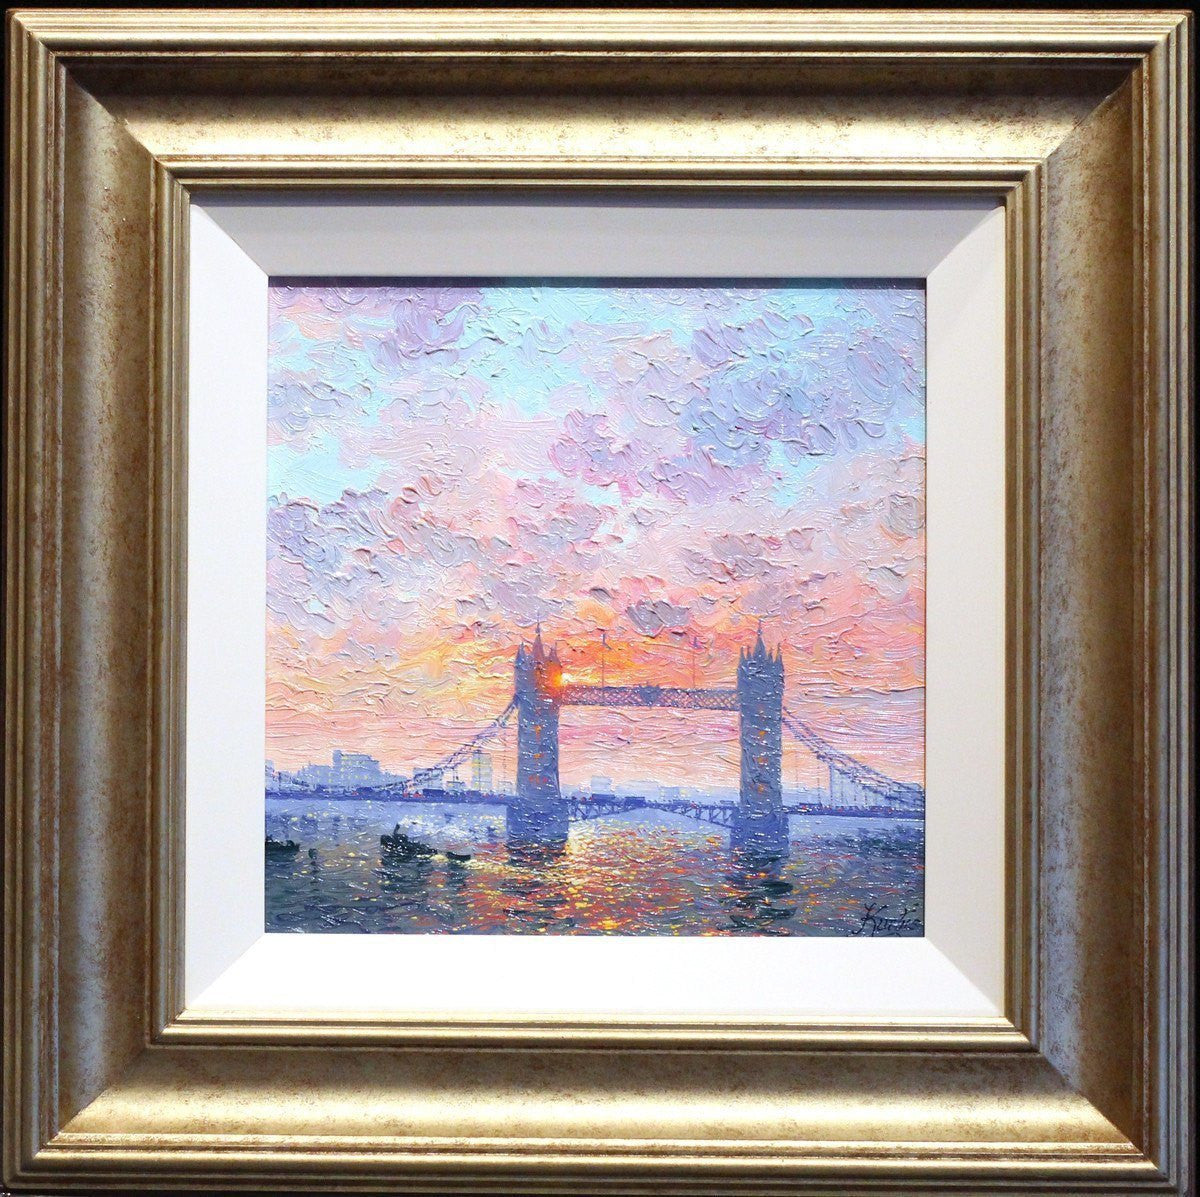 Sunshine Sparkle, Tower Bridge - SOLD Andrew Grant Kurtis